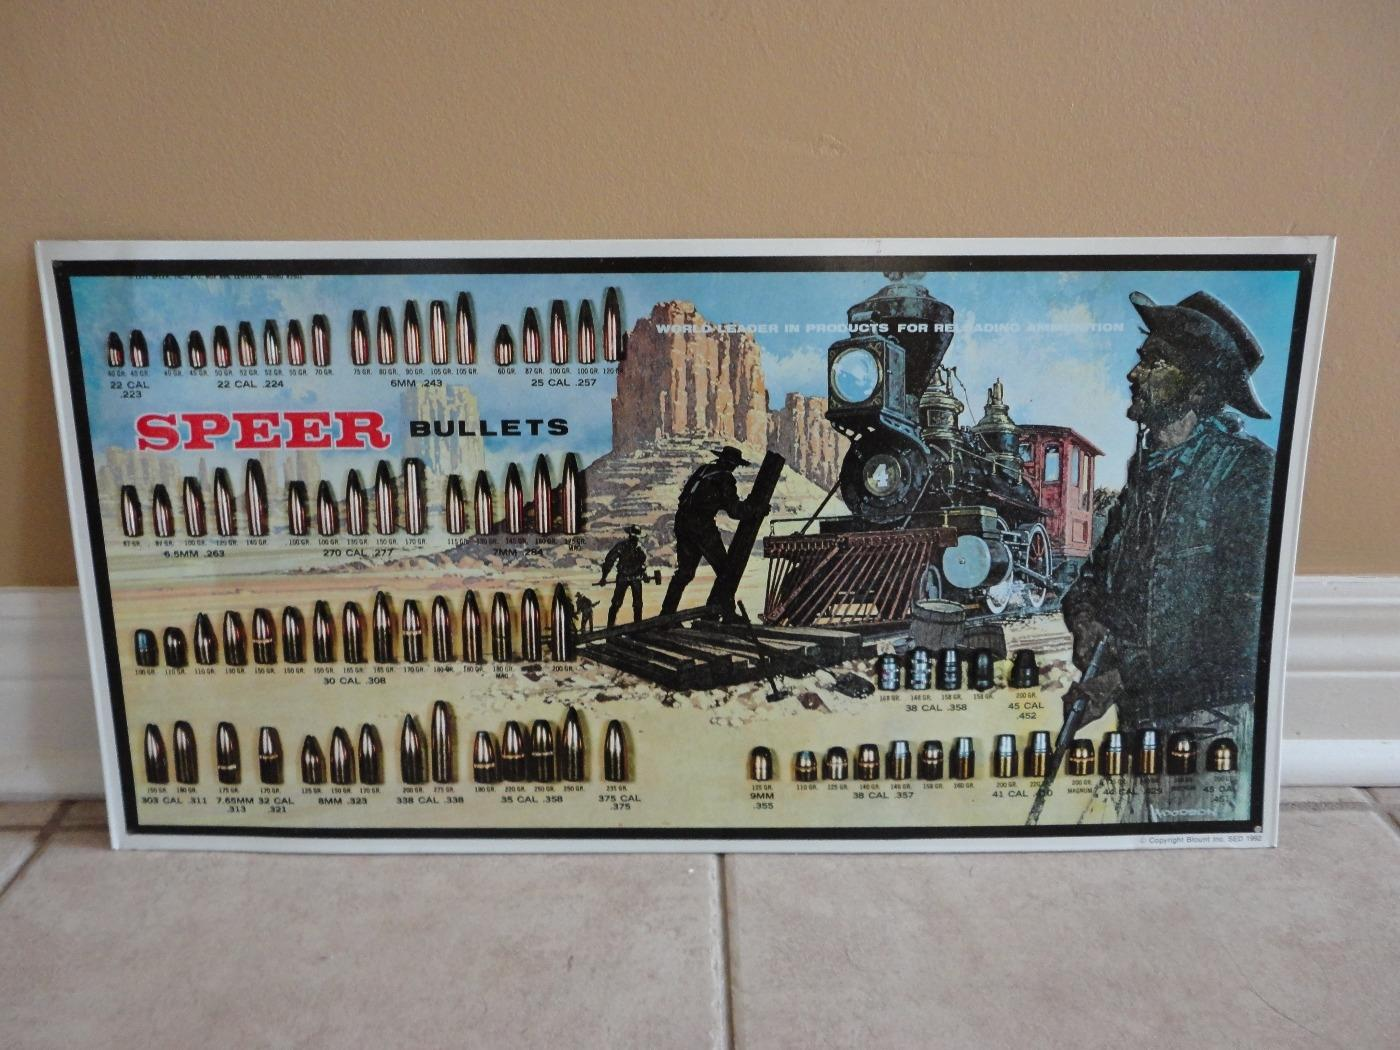 Speer Bullets reloading ammunition chart Blount Inc advertising sign 1992  dated